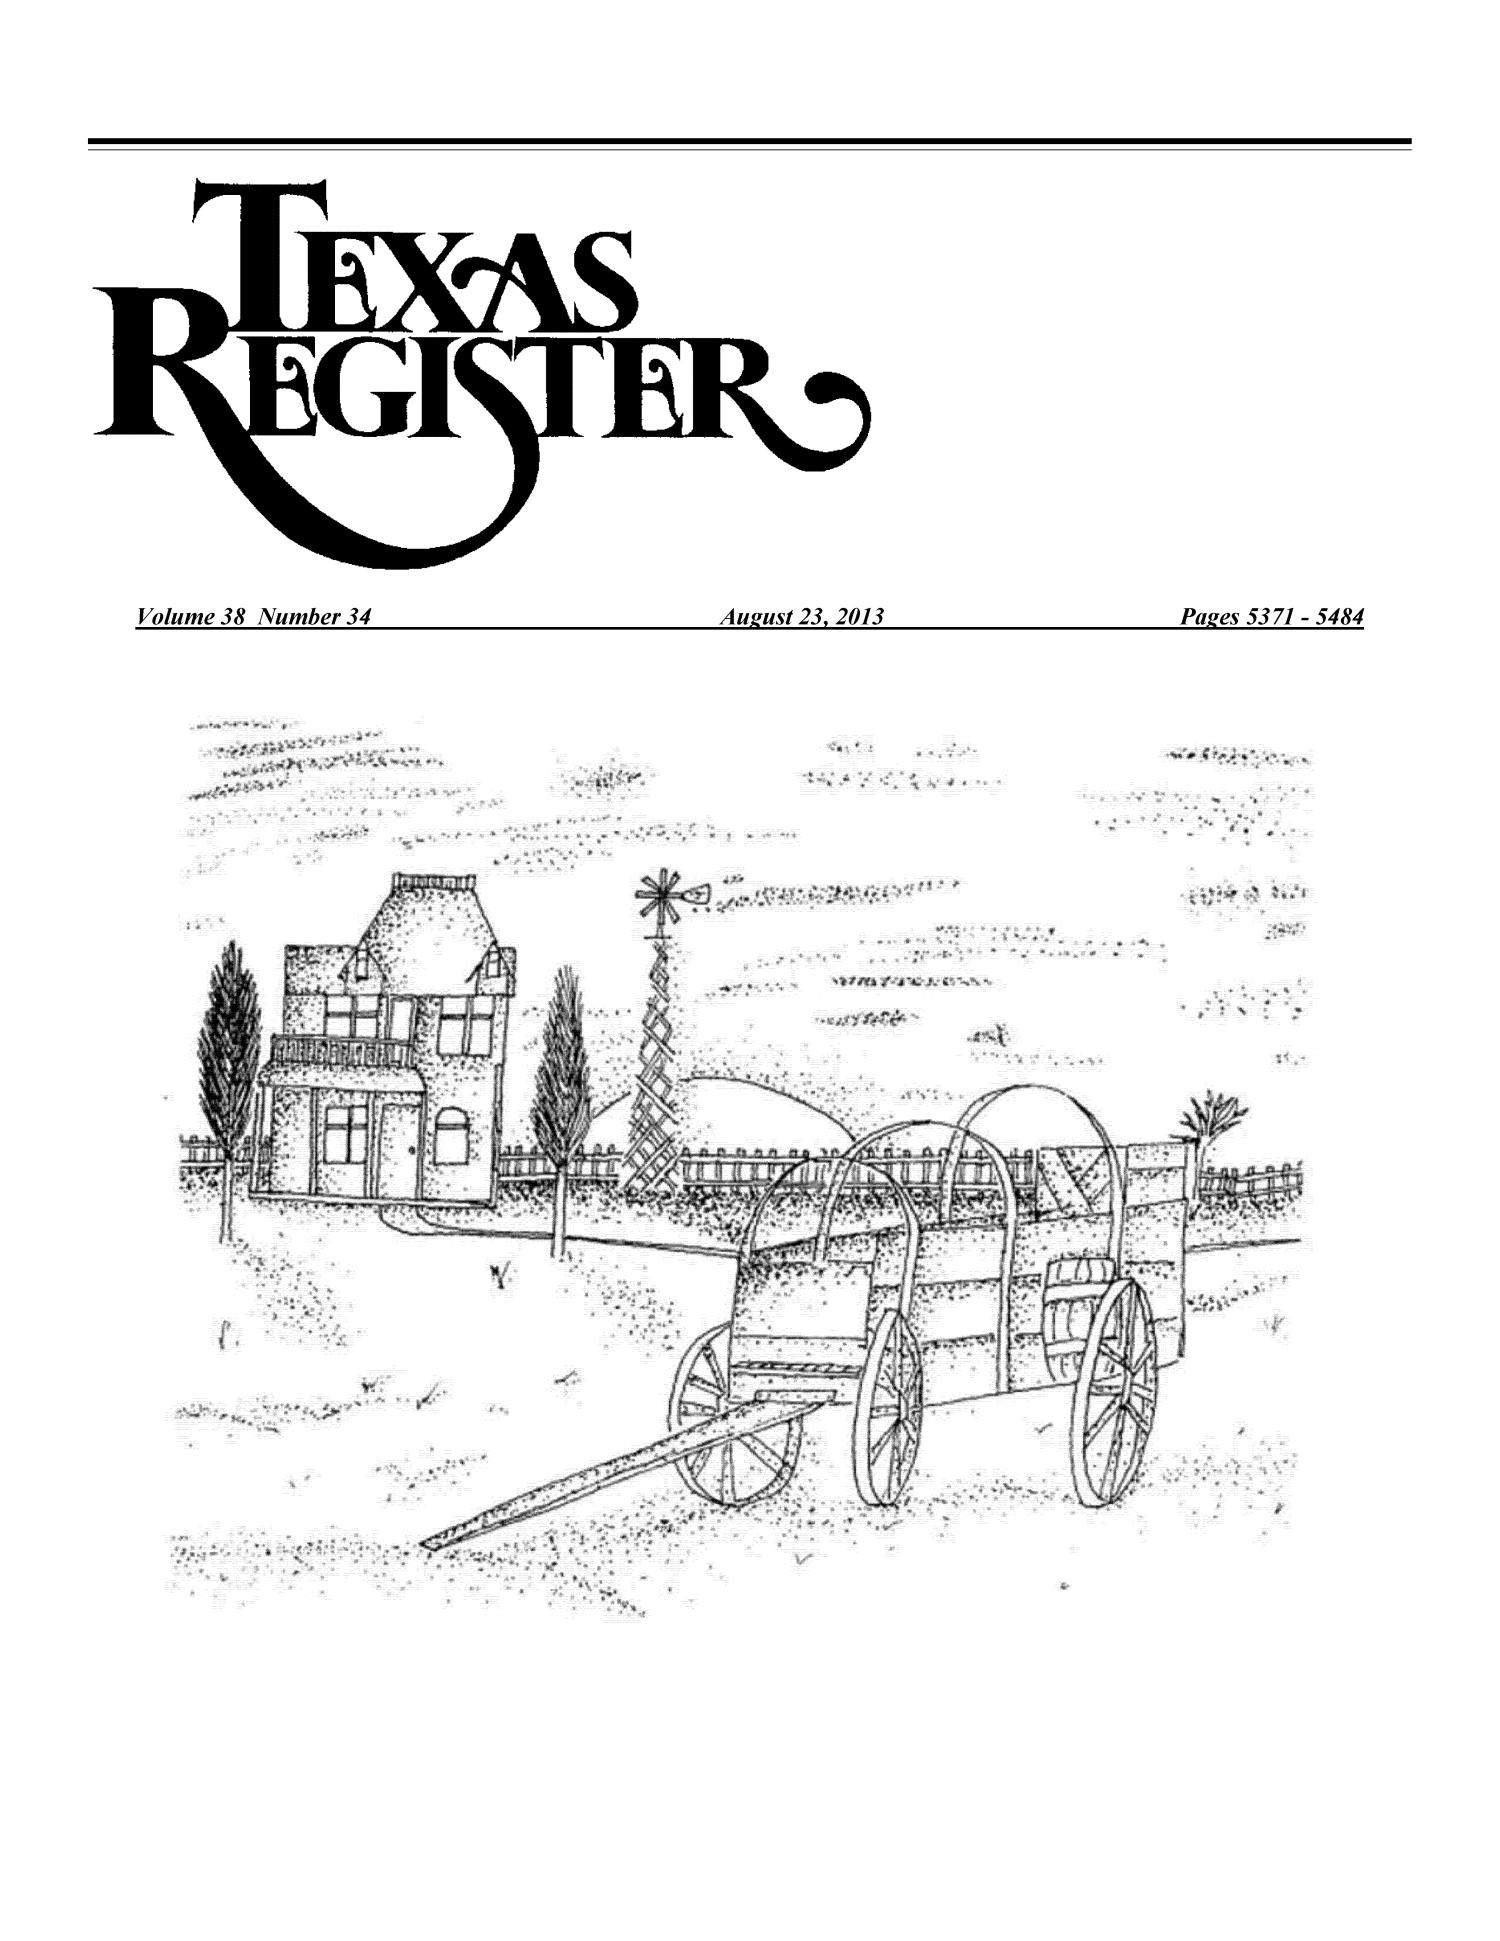 Texas Register, Volume 38, Number 34, Pages 5371-5484, August 23, 2013                                                                                                      Title Page